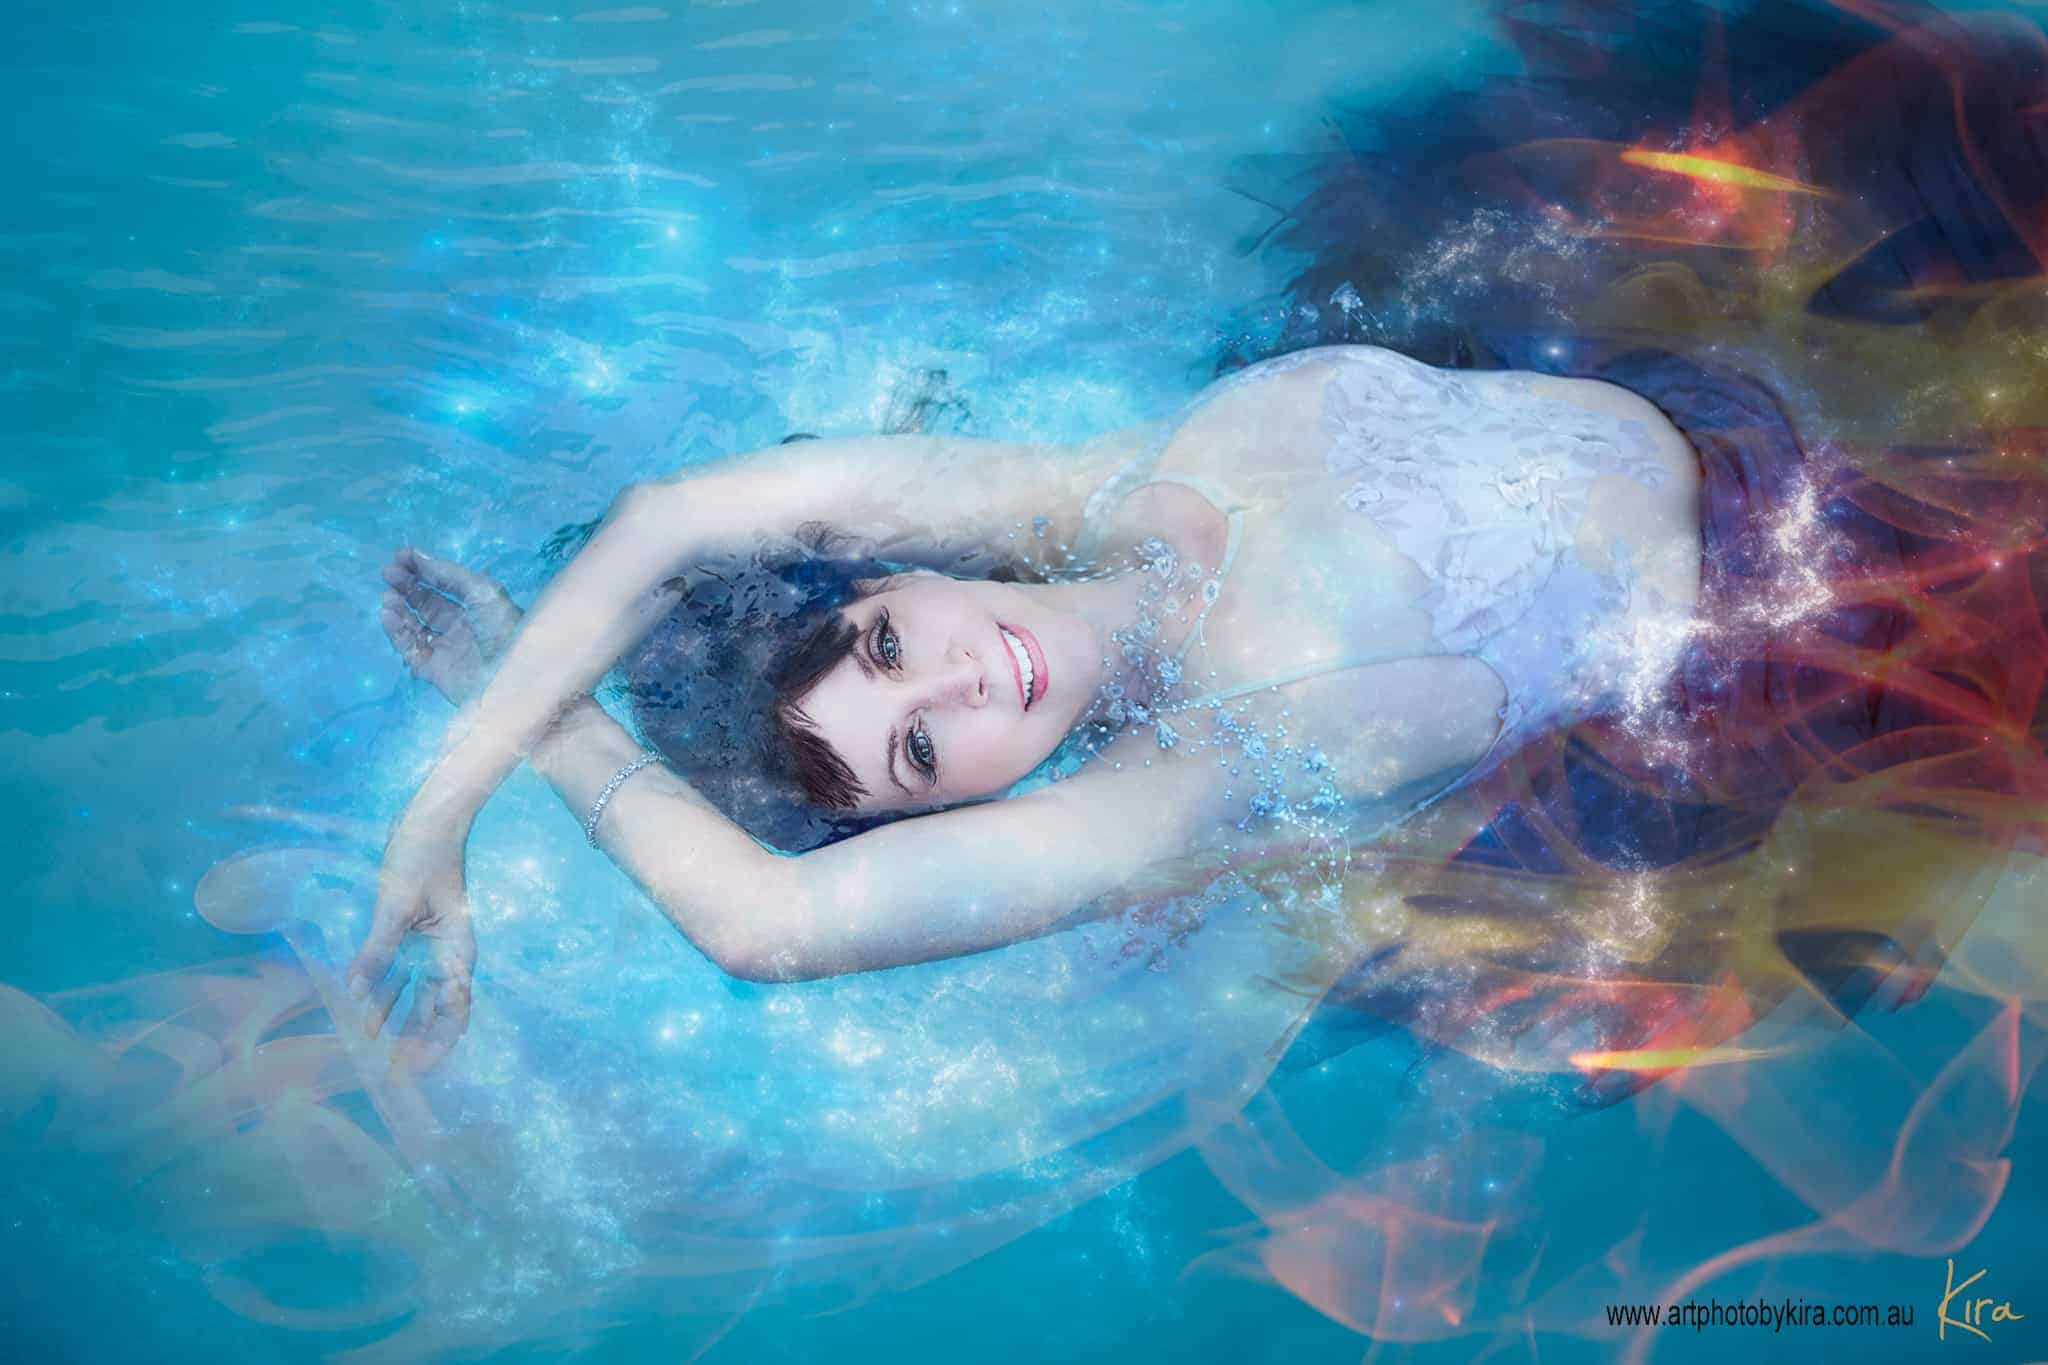 fine art portrait photography in water